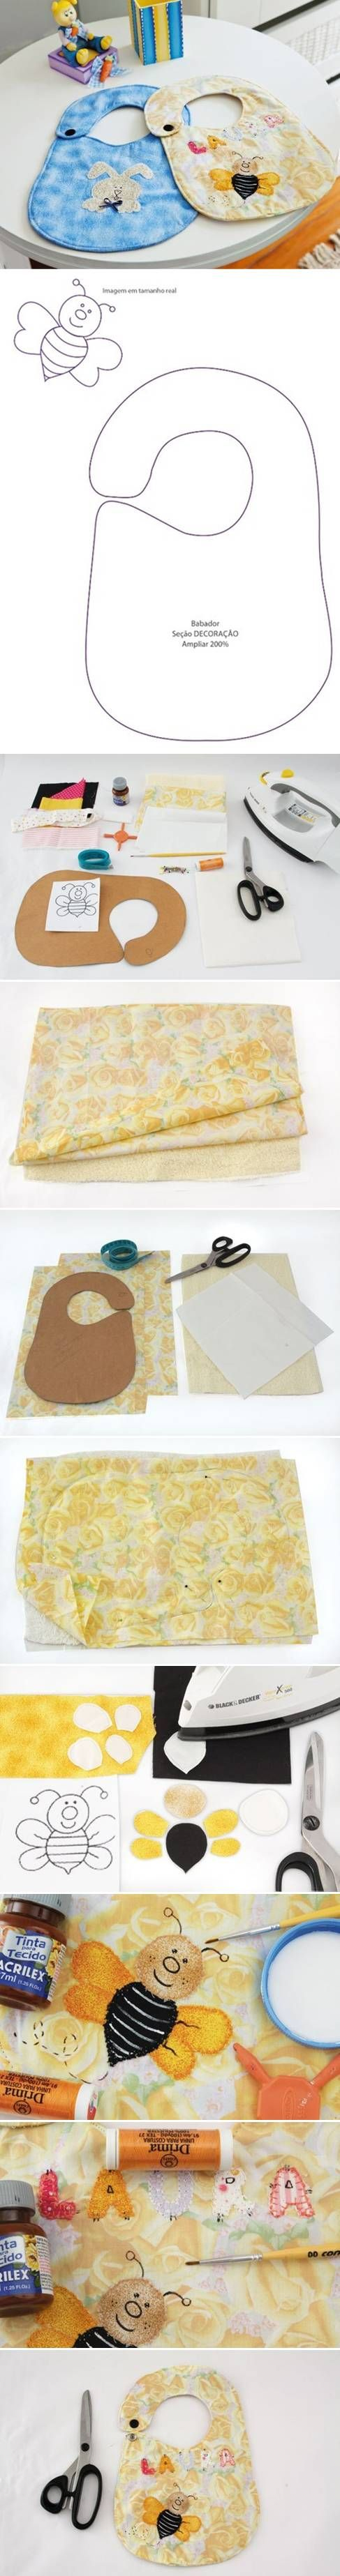 DIY Baby Bibs DIY Projects | UsefulDIY.com Follow Us on Facebook ==> http://www.facebook.com/UsefulDiy